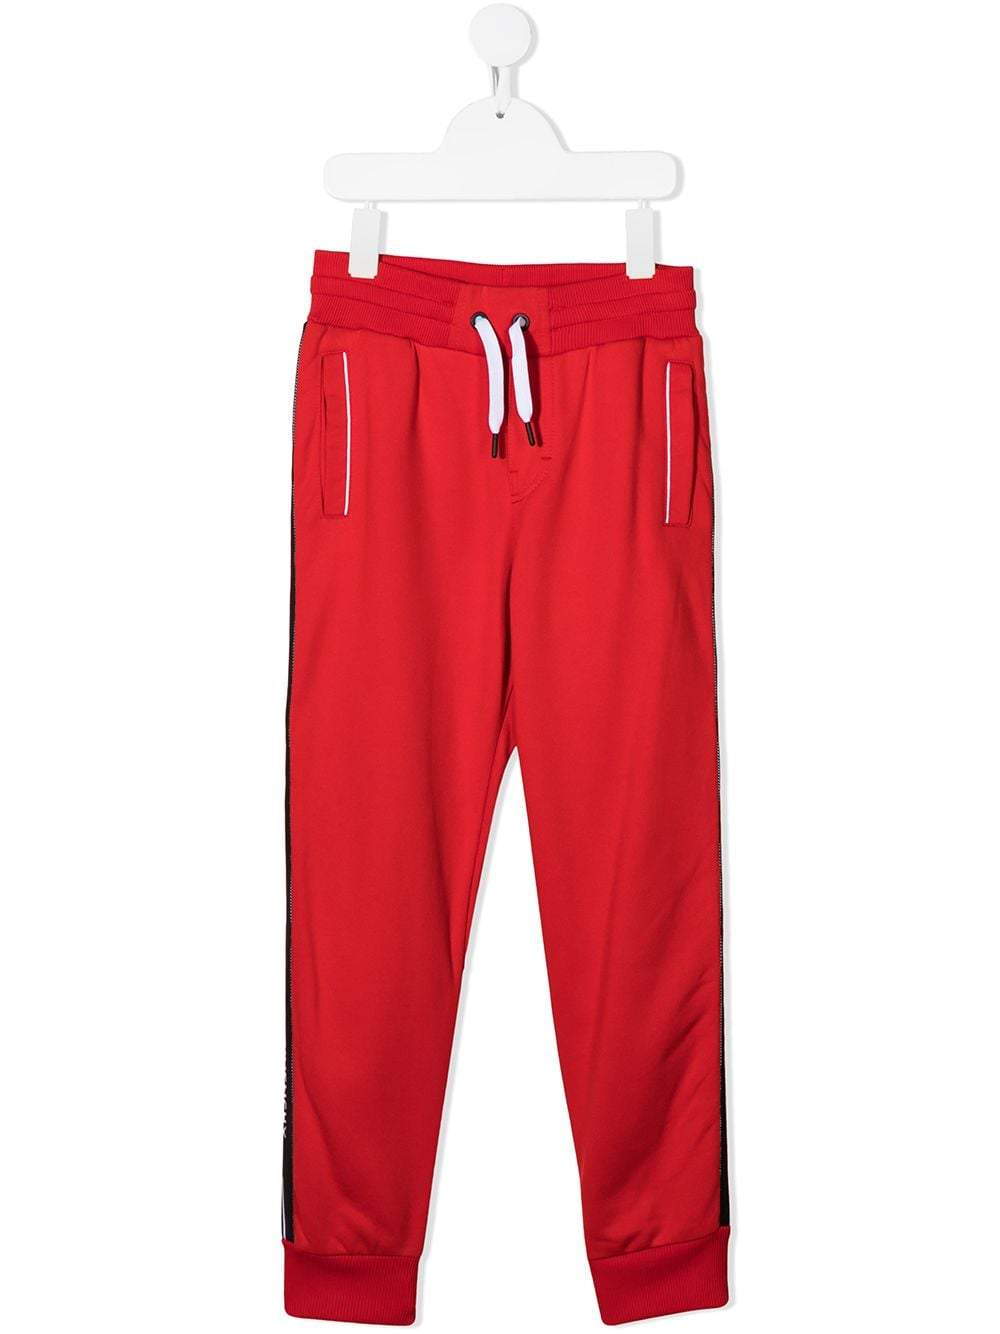 GIVENCHY KIDS Tape Logo Sweatpants Red